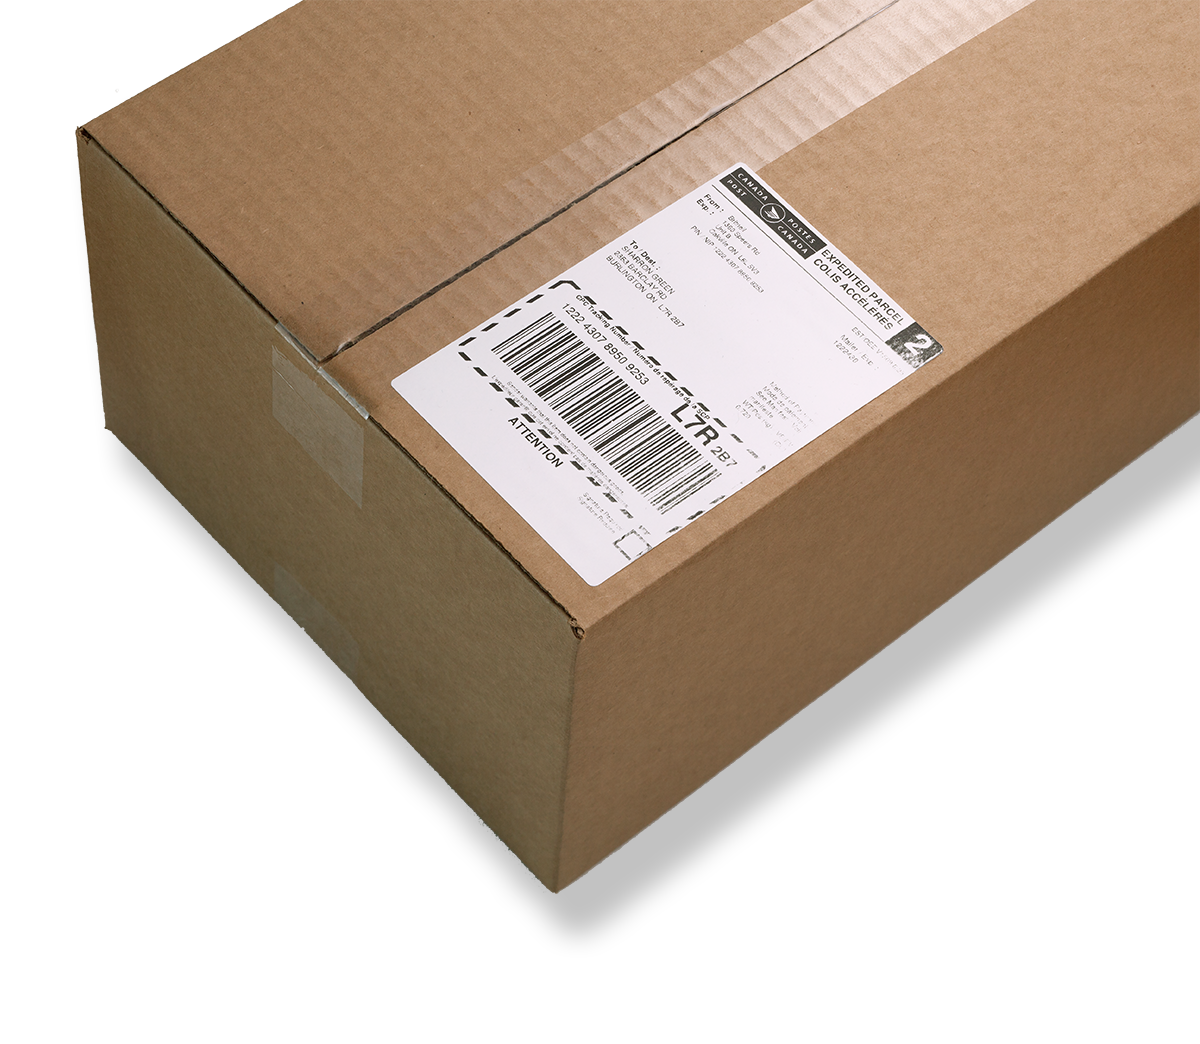 Discreet Shipping and Packaging with Healthwick